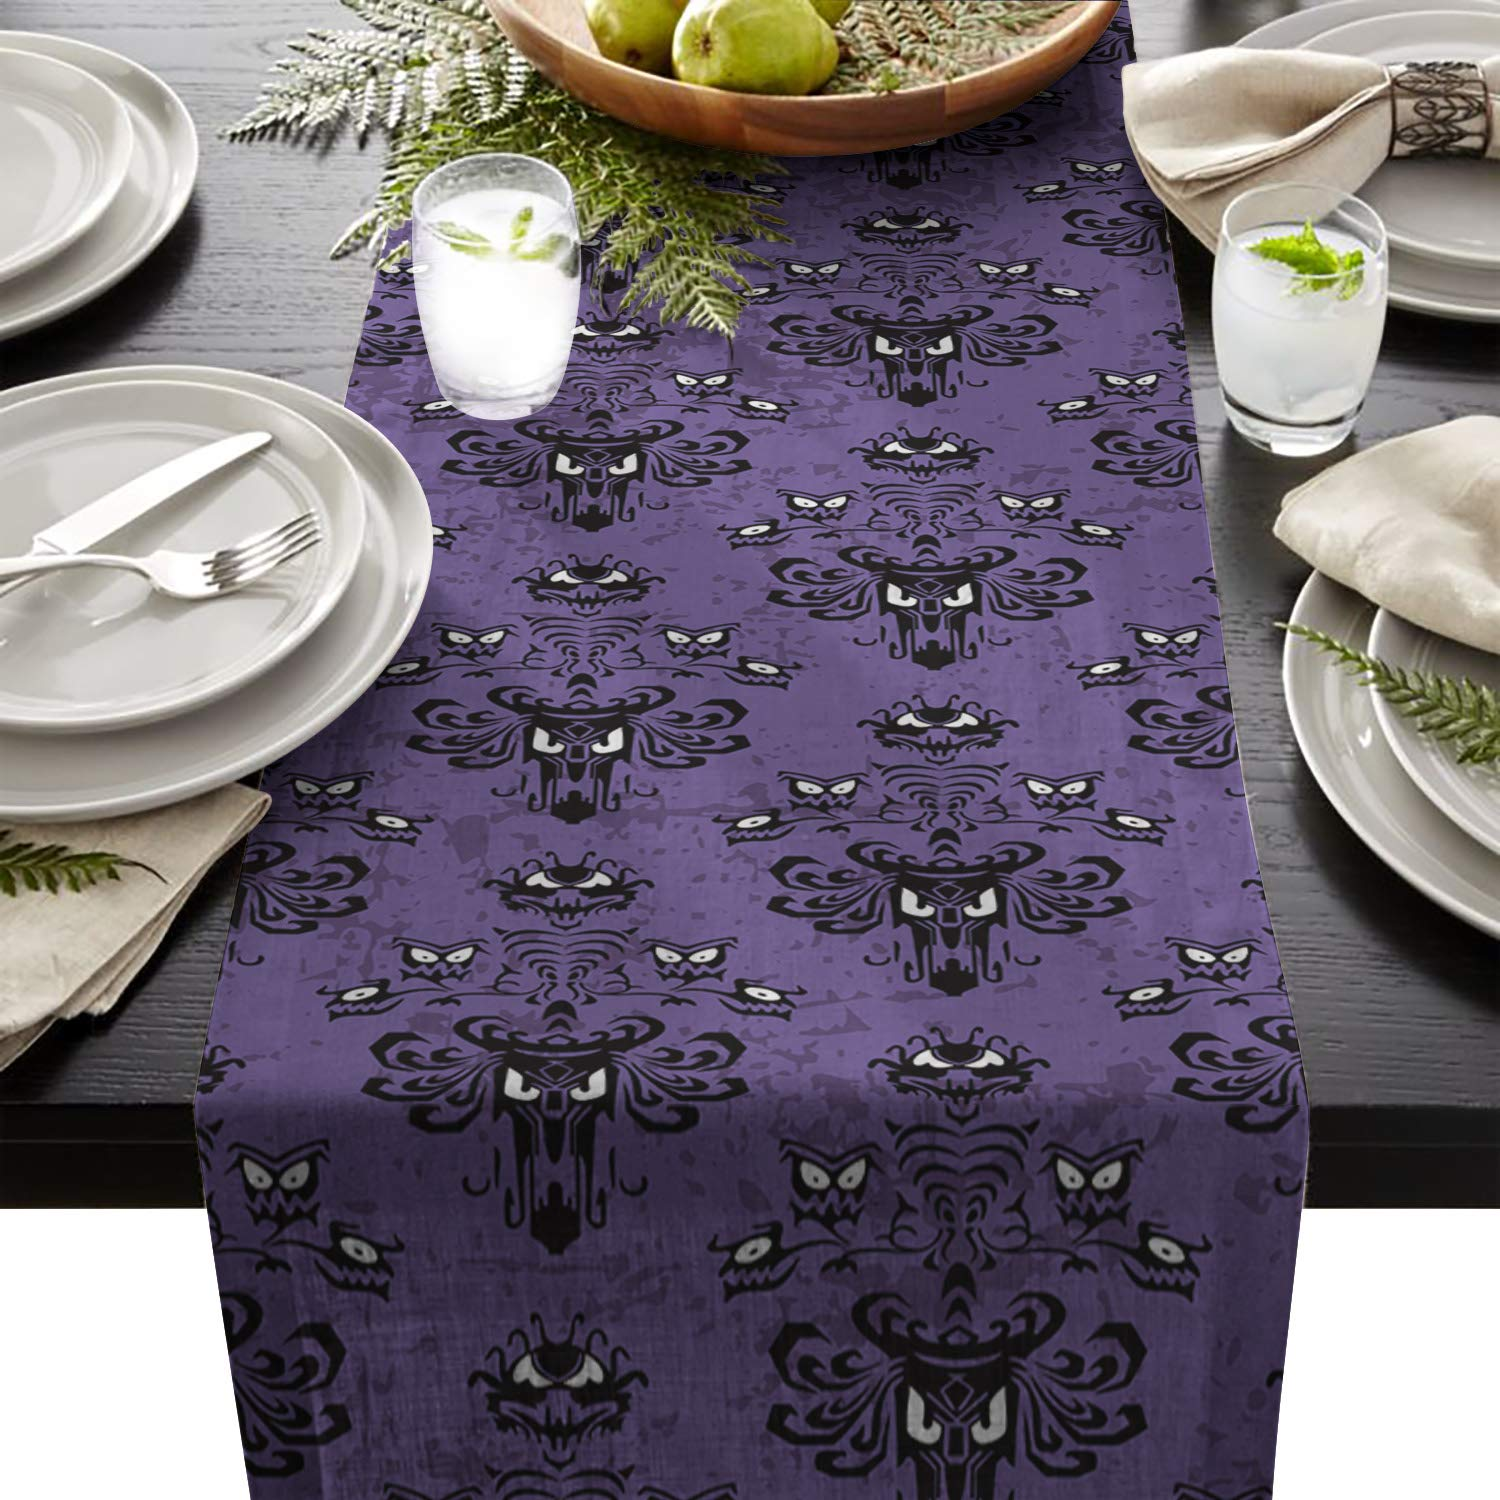 FAMILYDECOR Linen Burlap Table Runner Dresser Scarves, Halloween Decor Ghost Face Pattern Haunted Mansion Kitchen Table Runners for Dinner Holiday Parties, Wedding, Events, Decor - 13 x 70 Inch